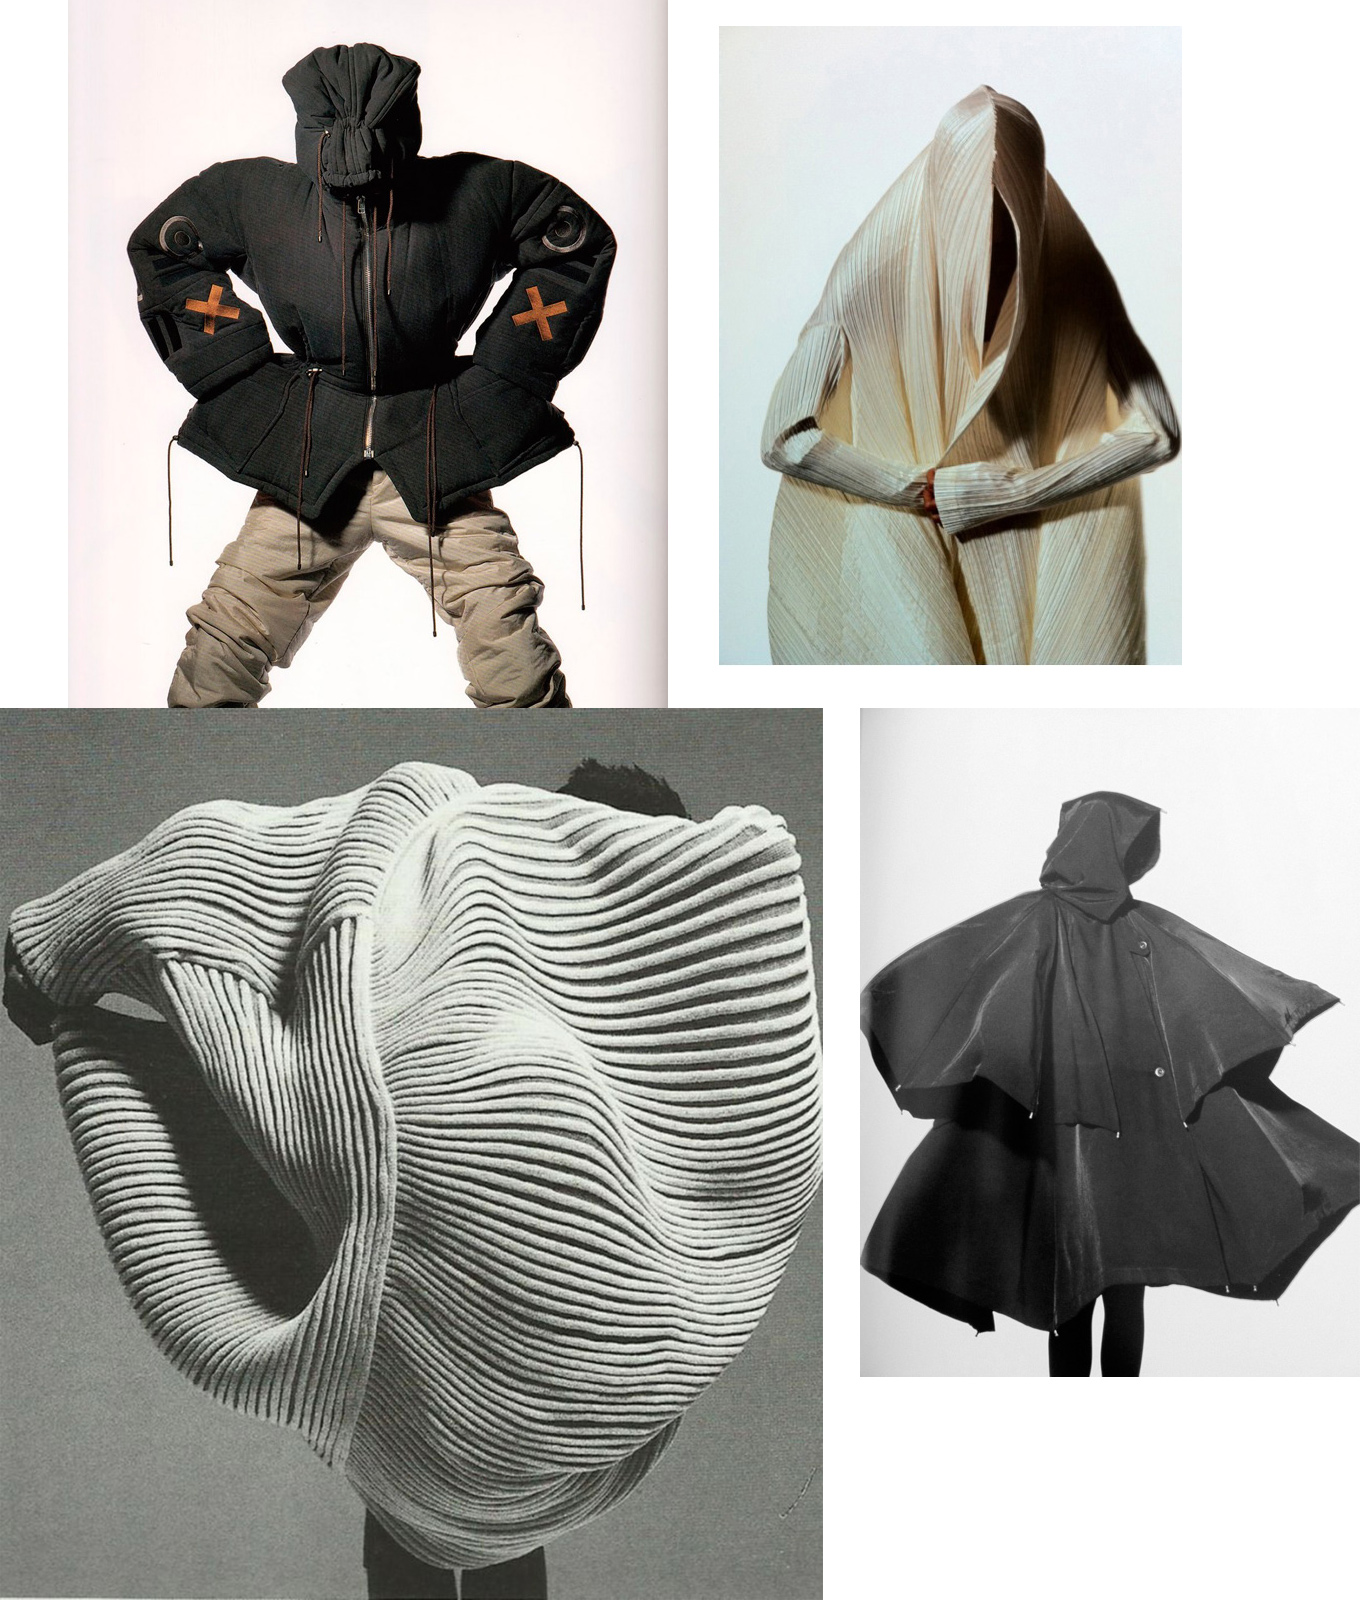 Issey Miyake, captured by Irving Penn